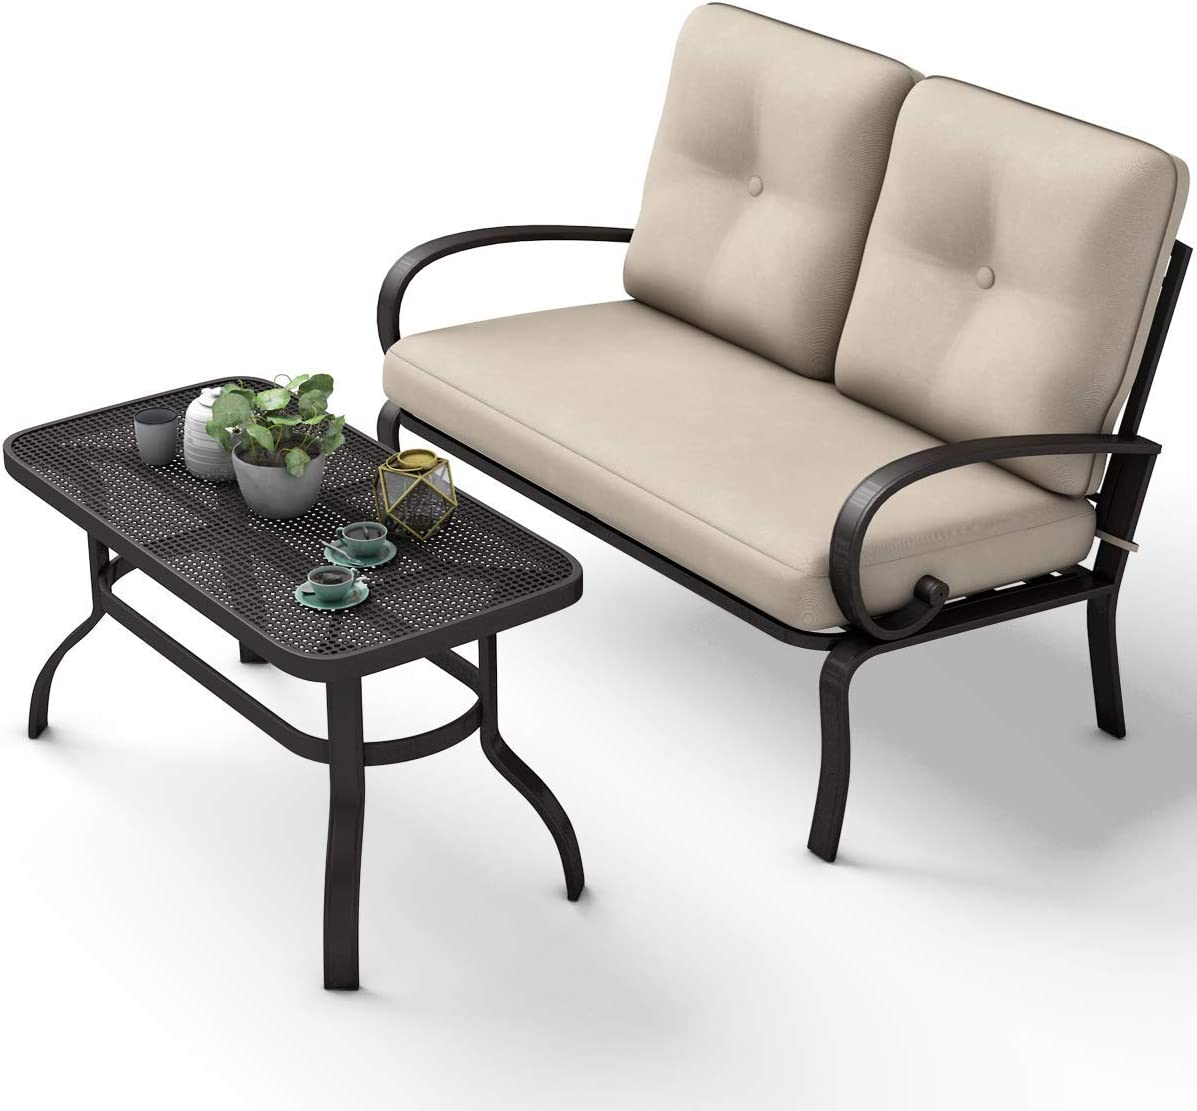 SPSUPE 2 Pcs Outdoor Patio Loveseat with Coffee Table, Metal Frame Bench with Cushion, Furniture Set Sofa, Ideal for Patio, Garden or Poolside